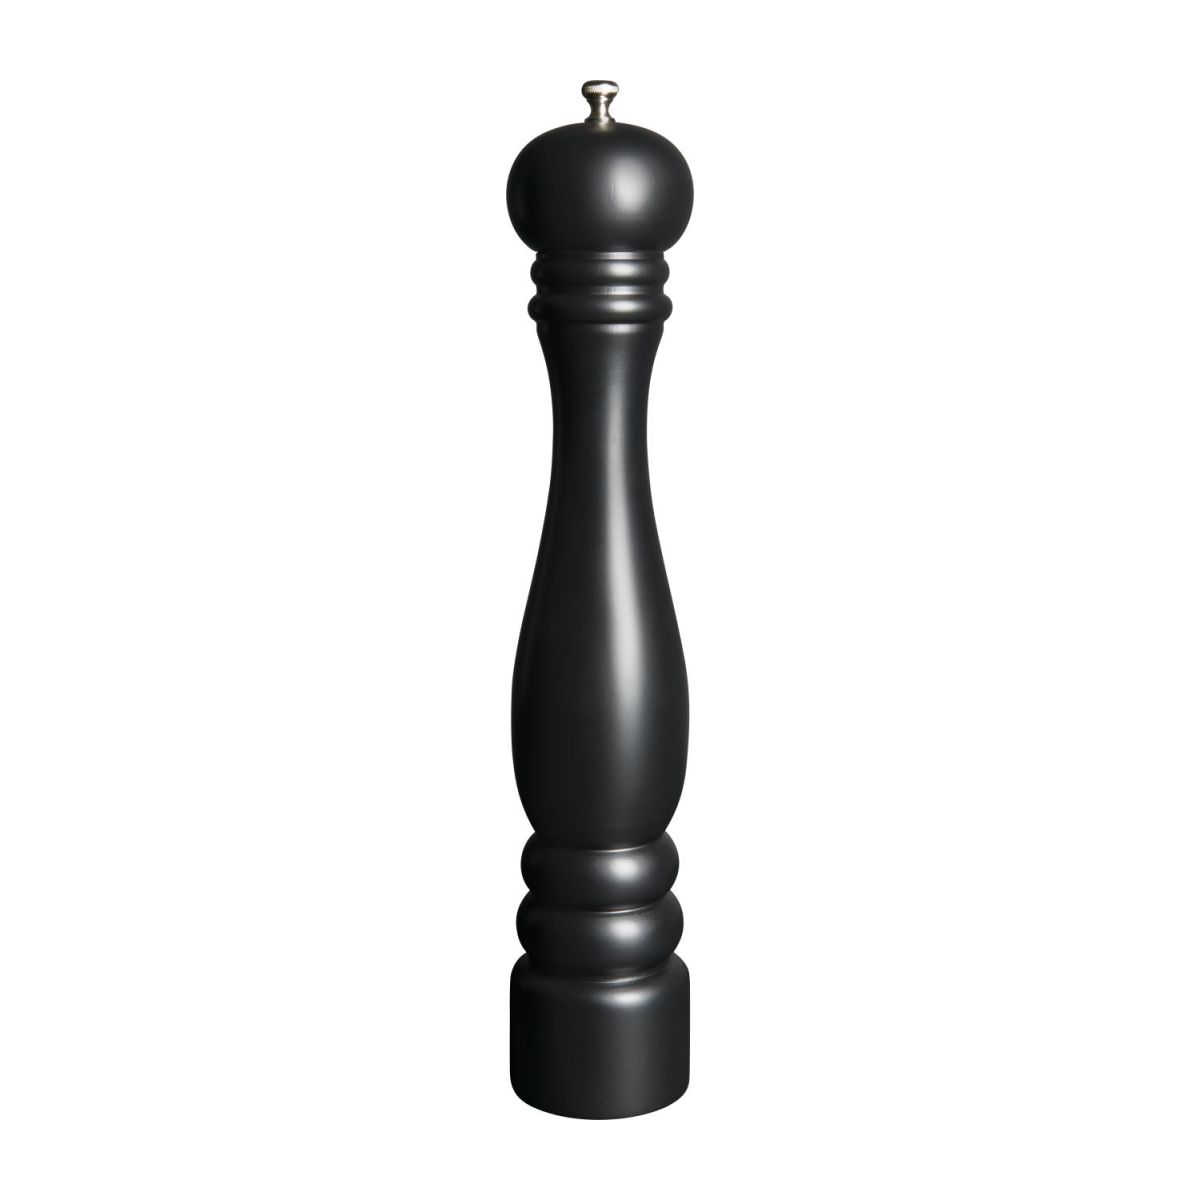 Pepper mill 42cm in hevea, black n°2